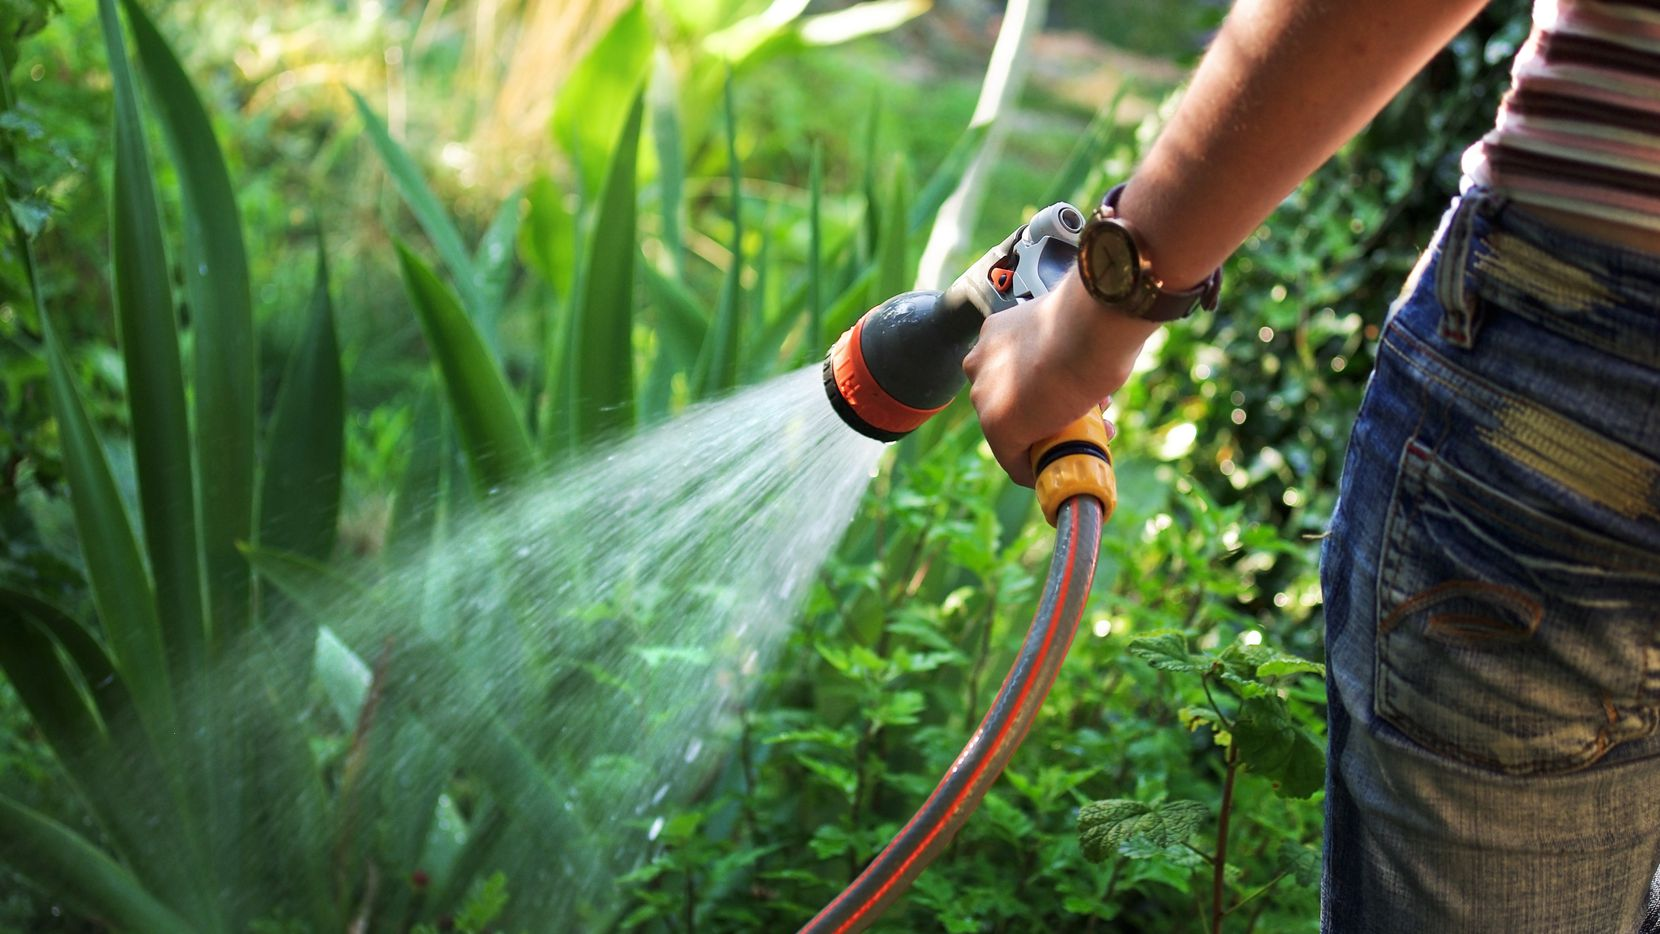 Watering sustainable garden